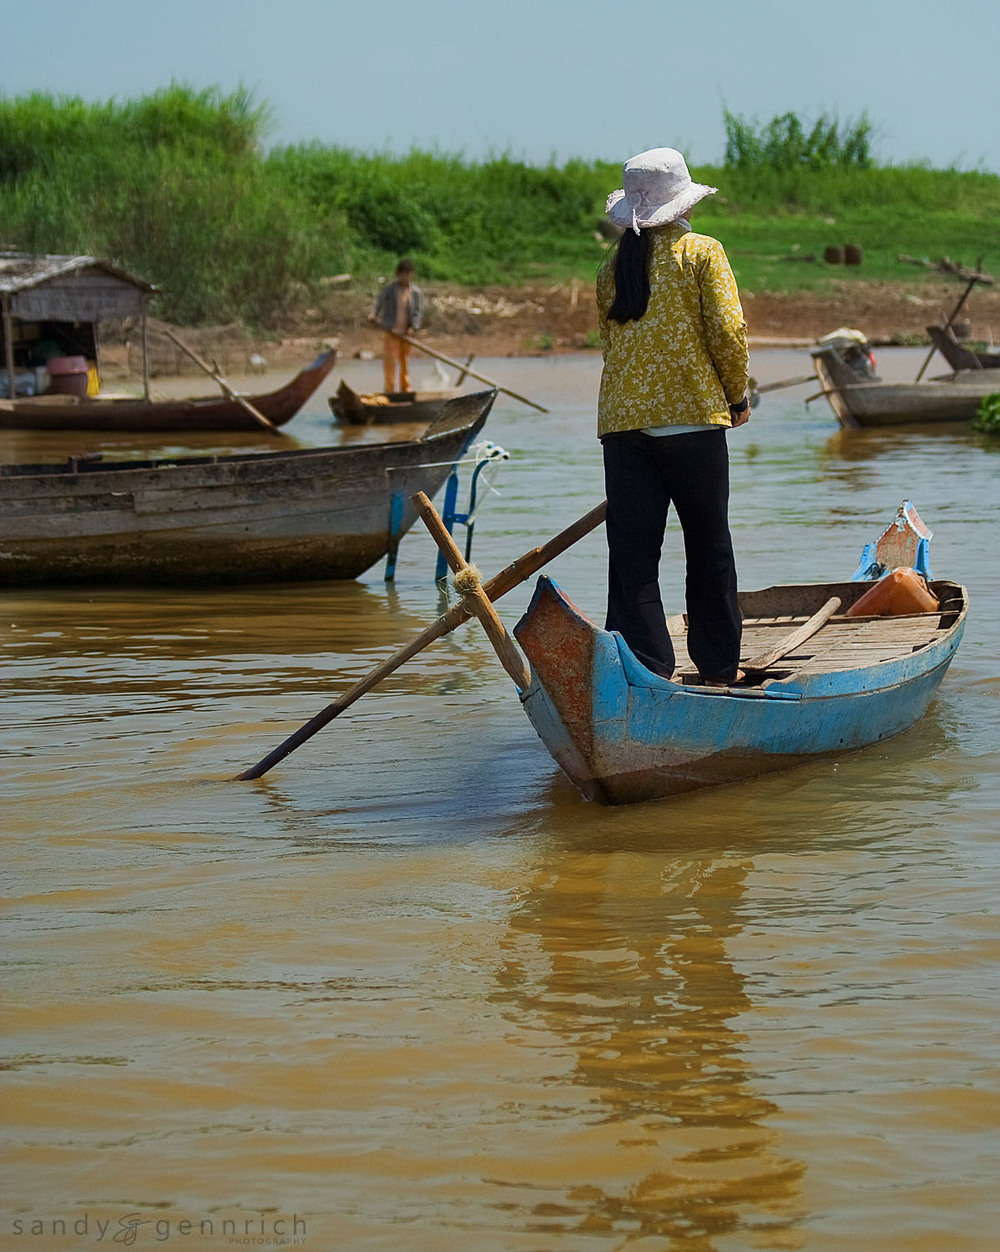 Commuting on the River - Kampong Chnang - Cambodia